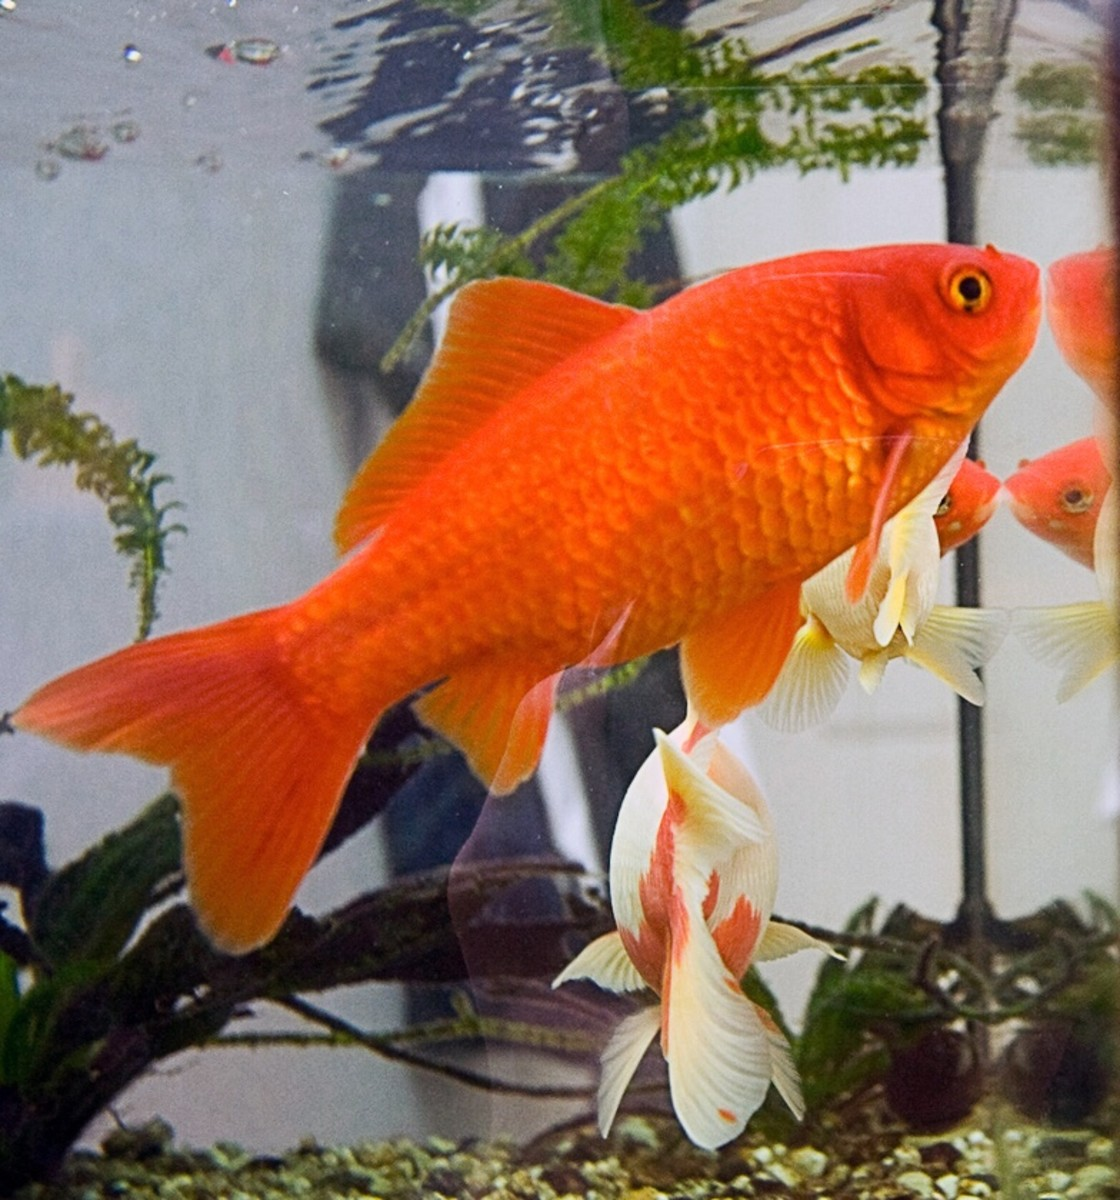 A beautifully coloured goldfish